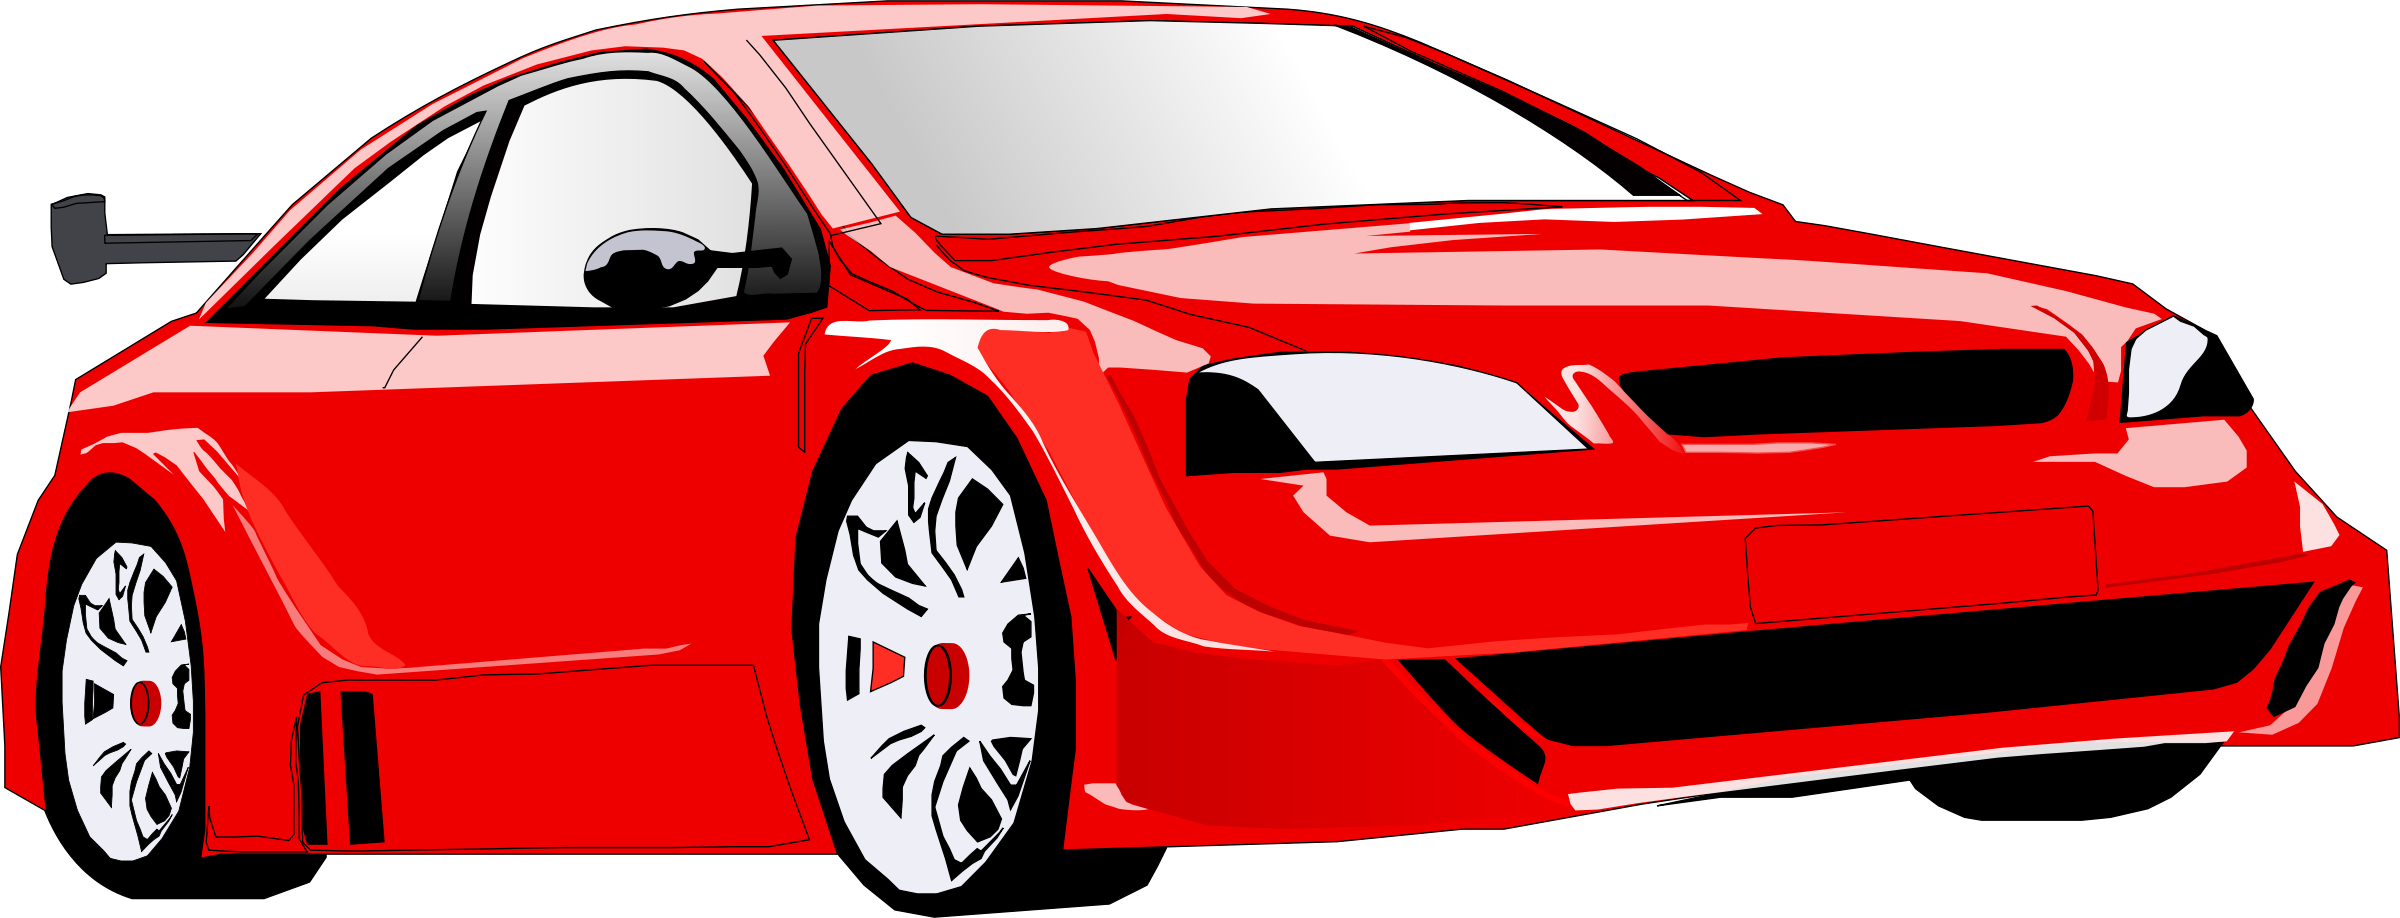 Clipart car colour.  collection of image